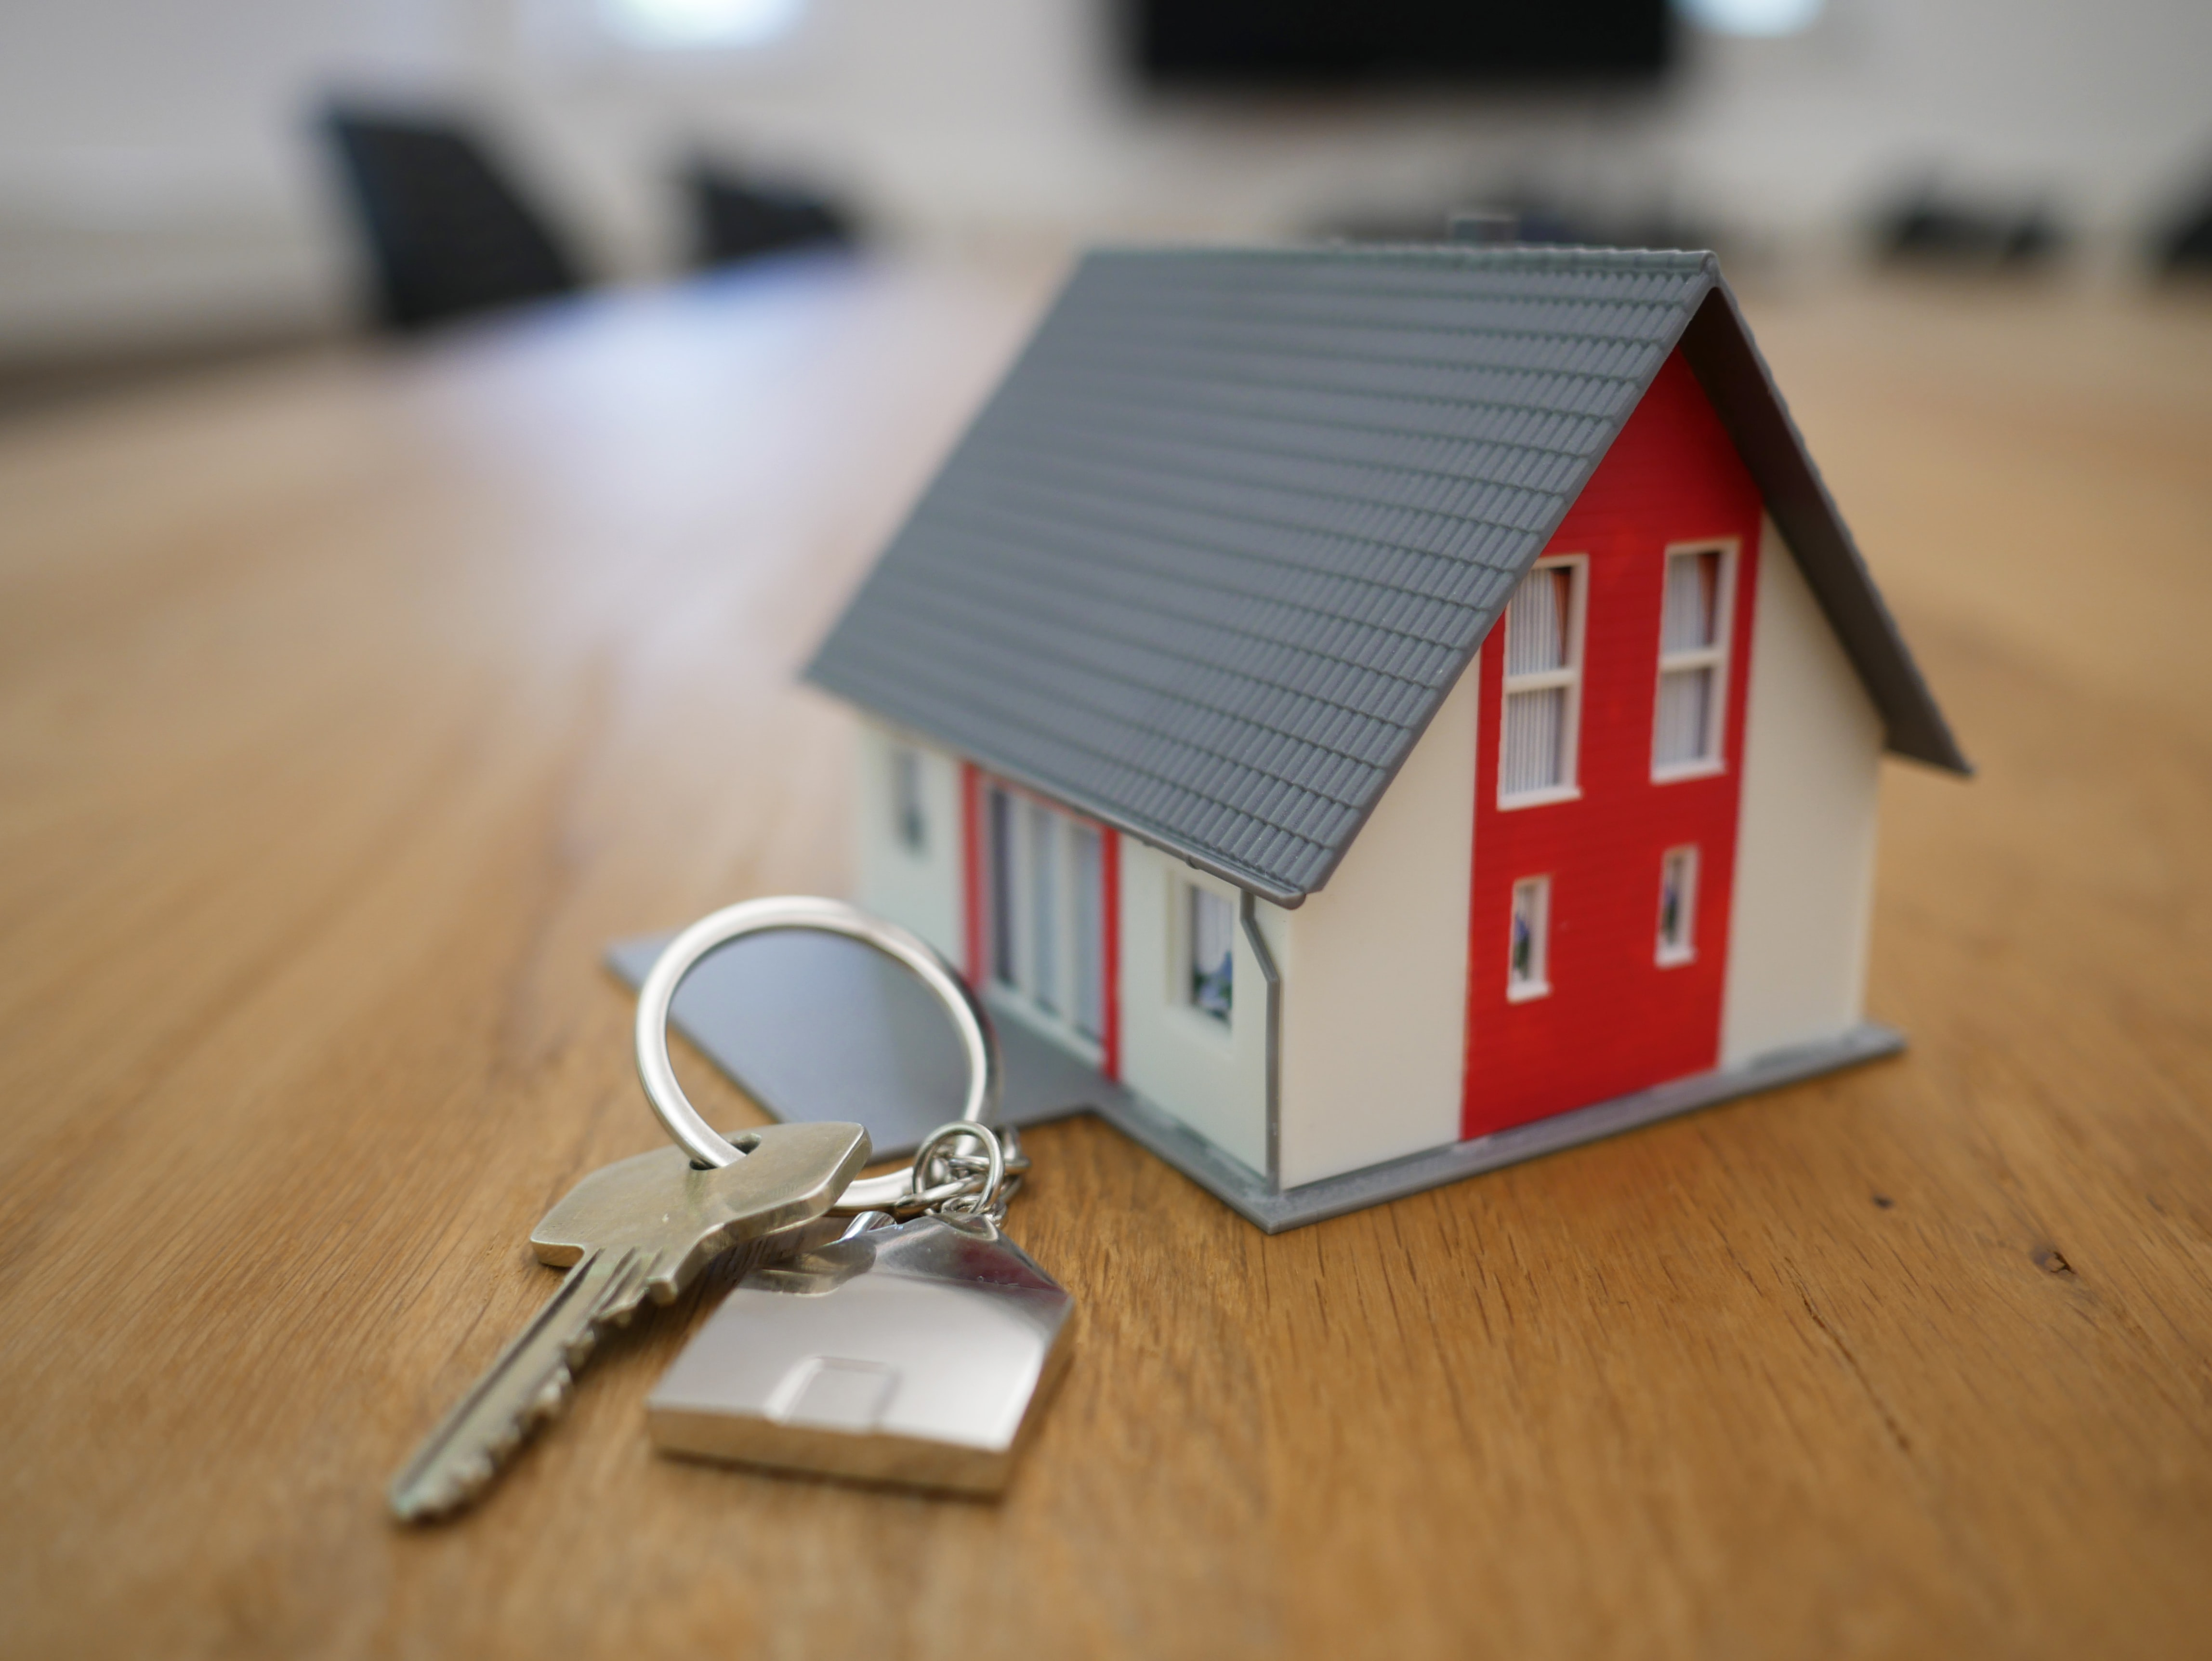 DEBTS: PERSONAL LOANS AND HOMELOANS